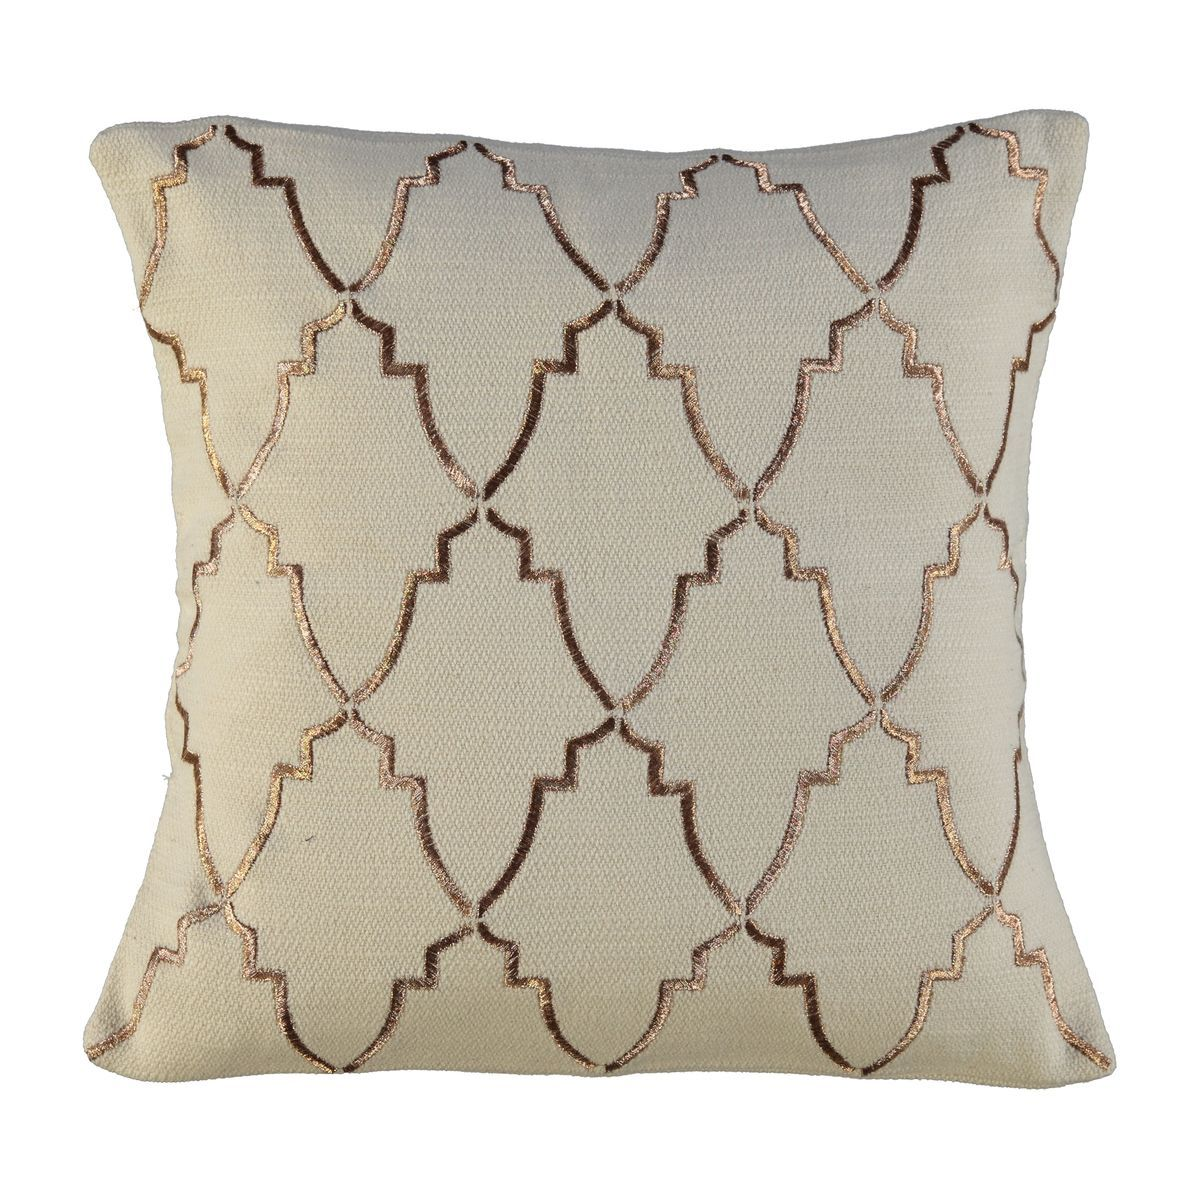 Cushion Cover / Damask - Copper embroideried